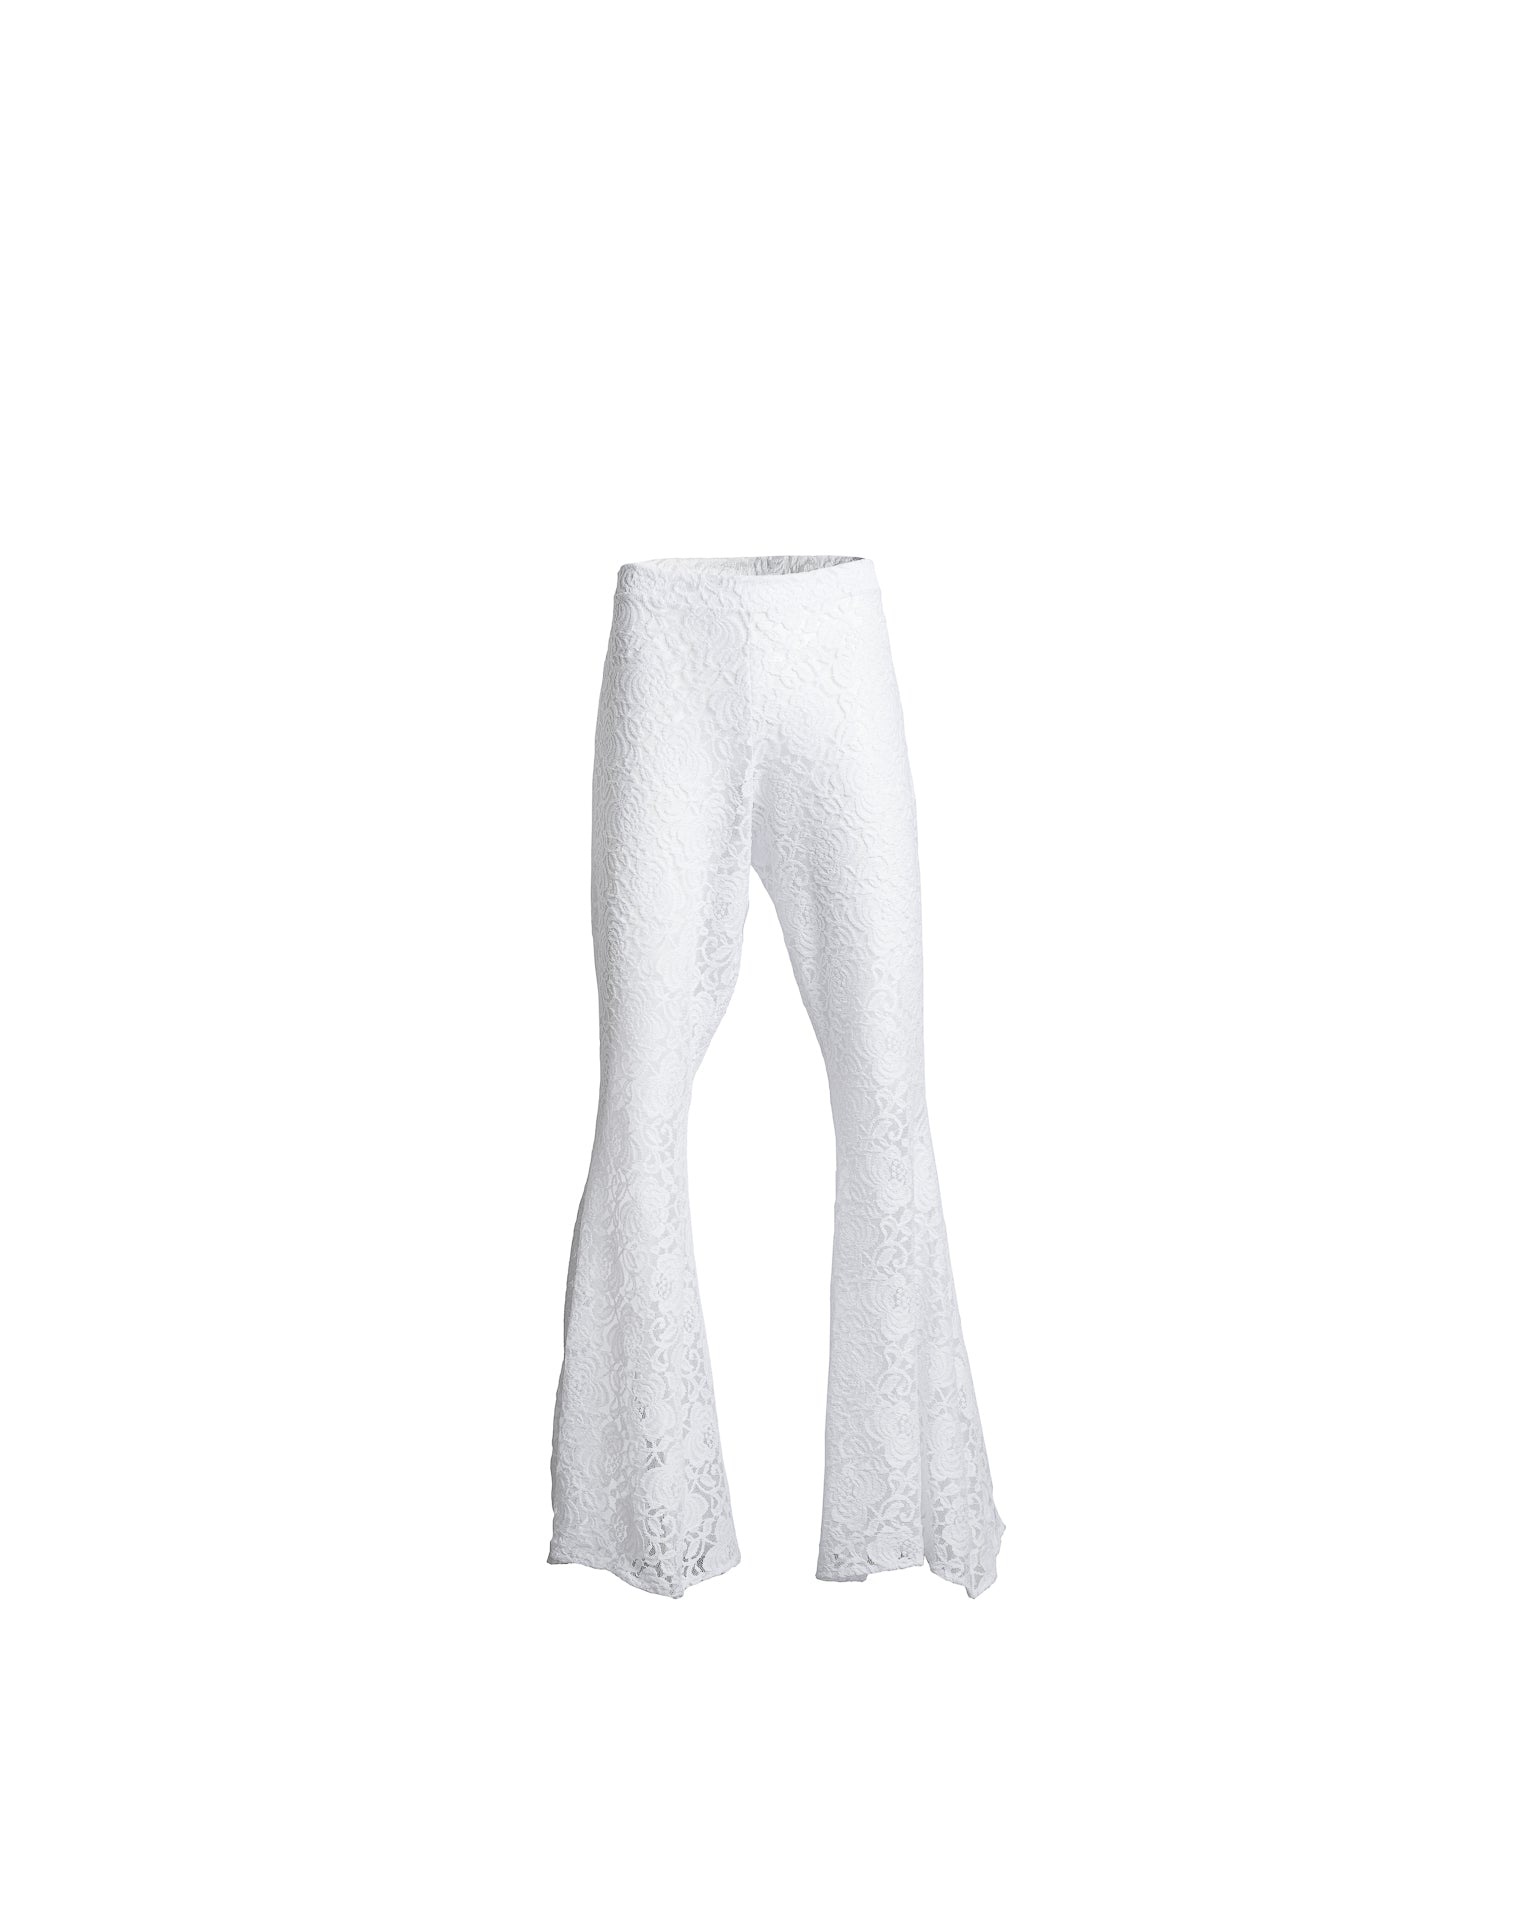 Antigua Party Pants White Lace